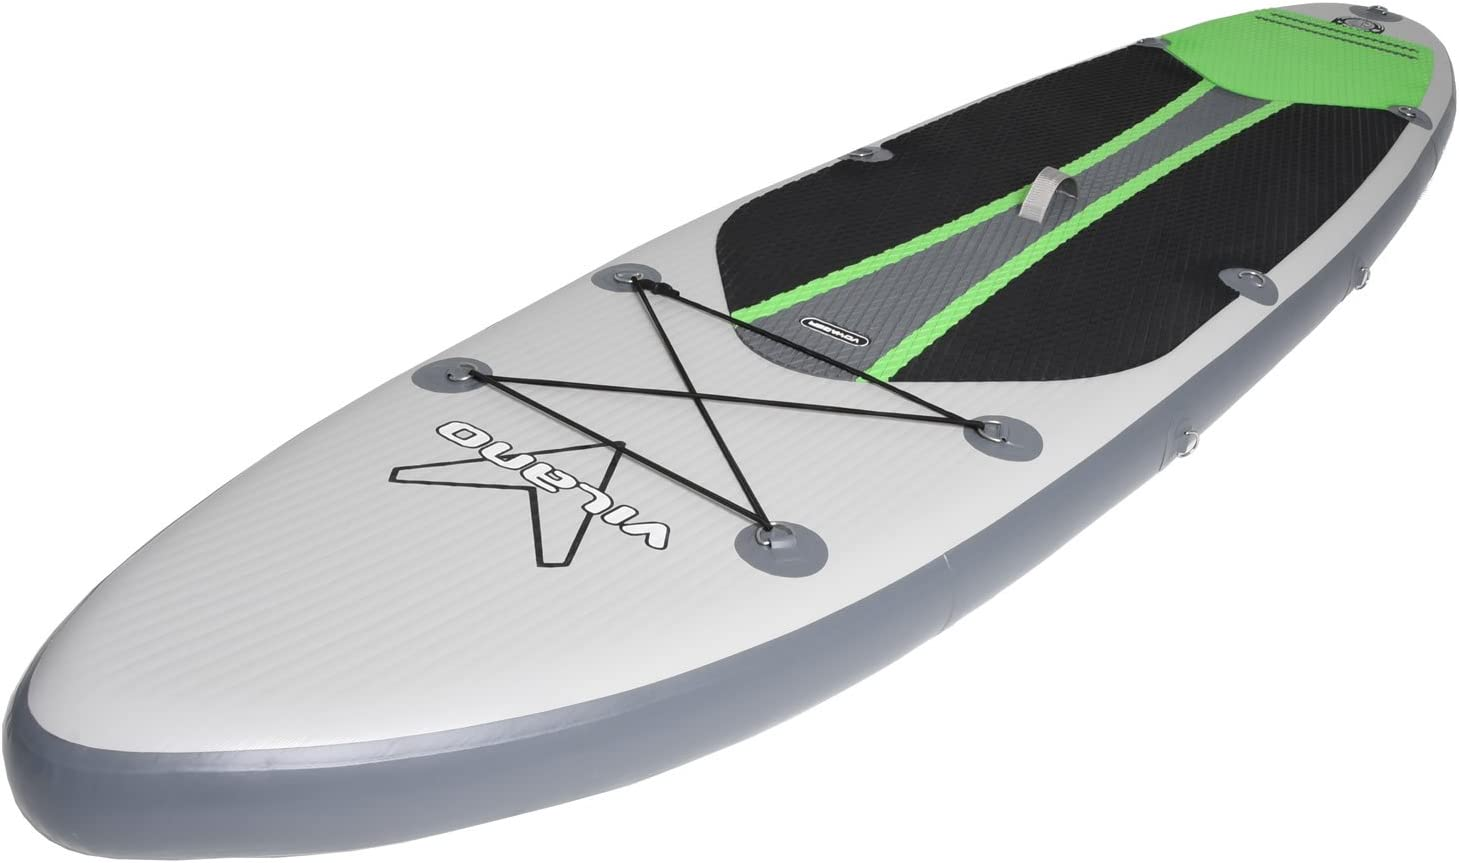 Vilano Voyager 11 Inflatable SUP Stand Up Paddle Board Package, 6